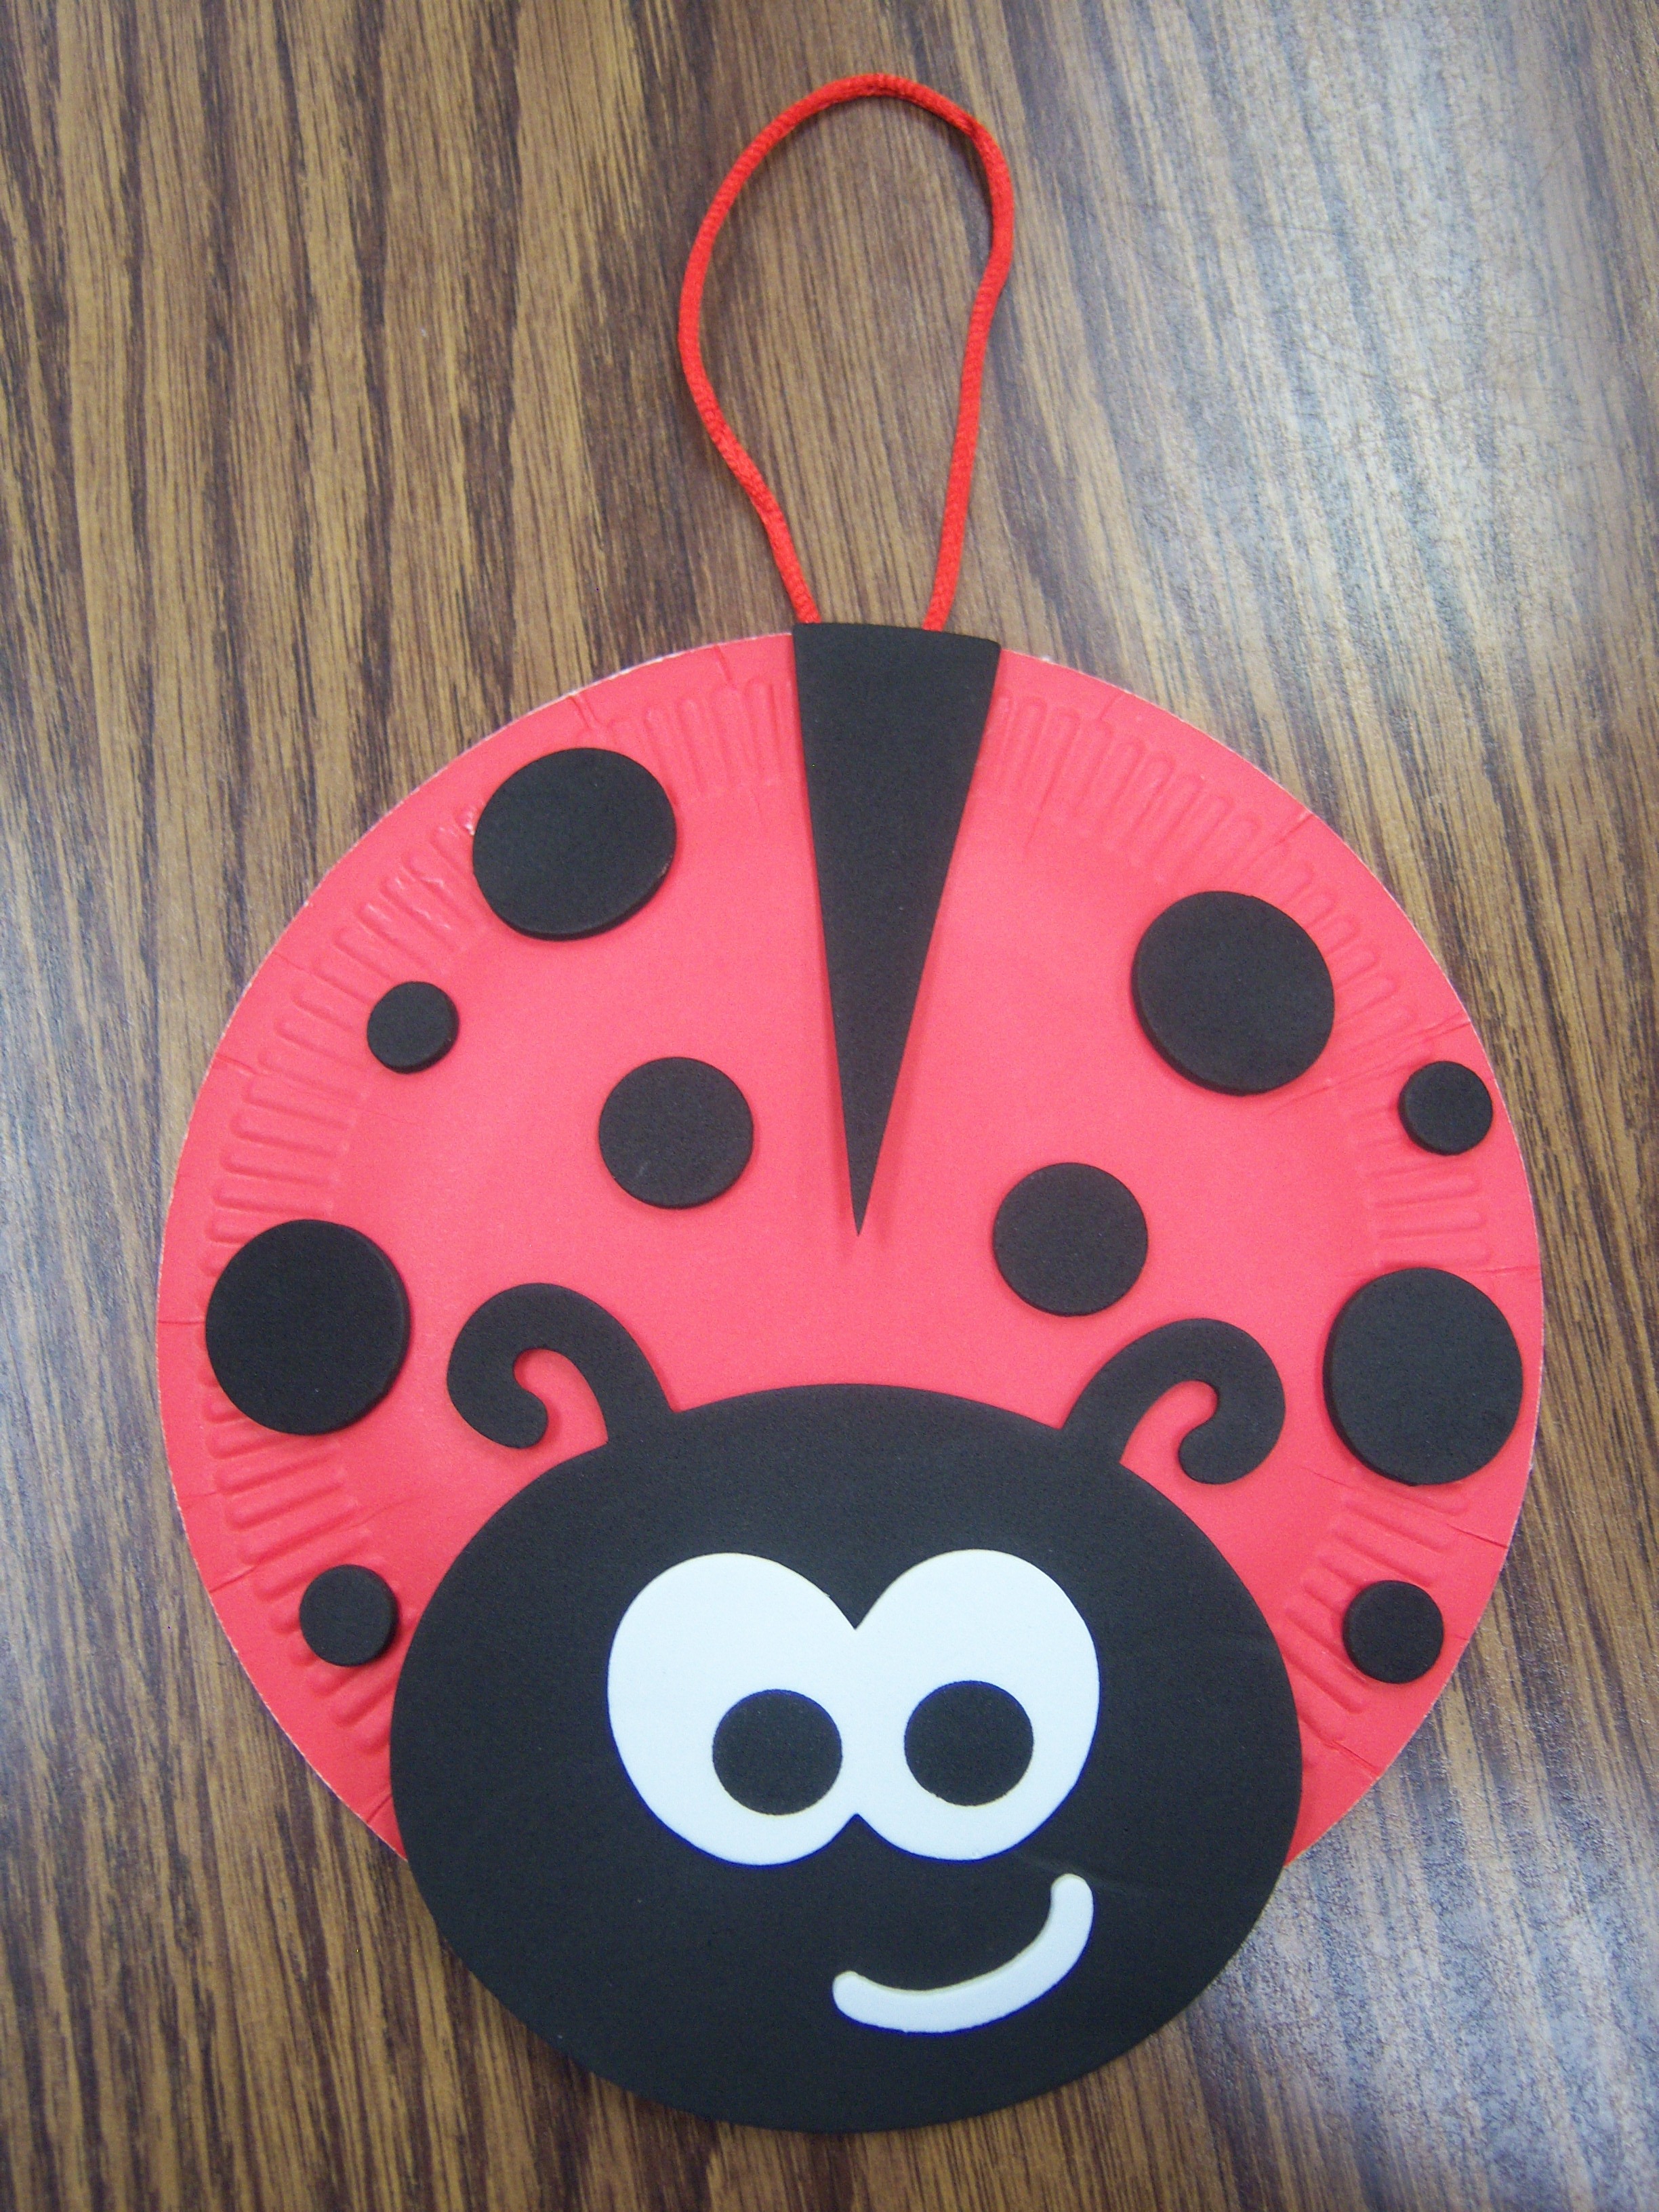 Bugs storytime katie for Ladybug arts and crafts